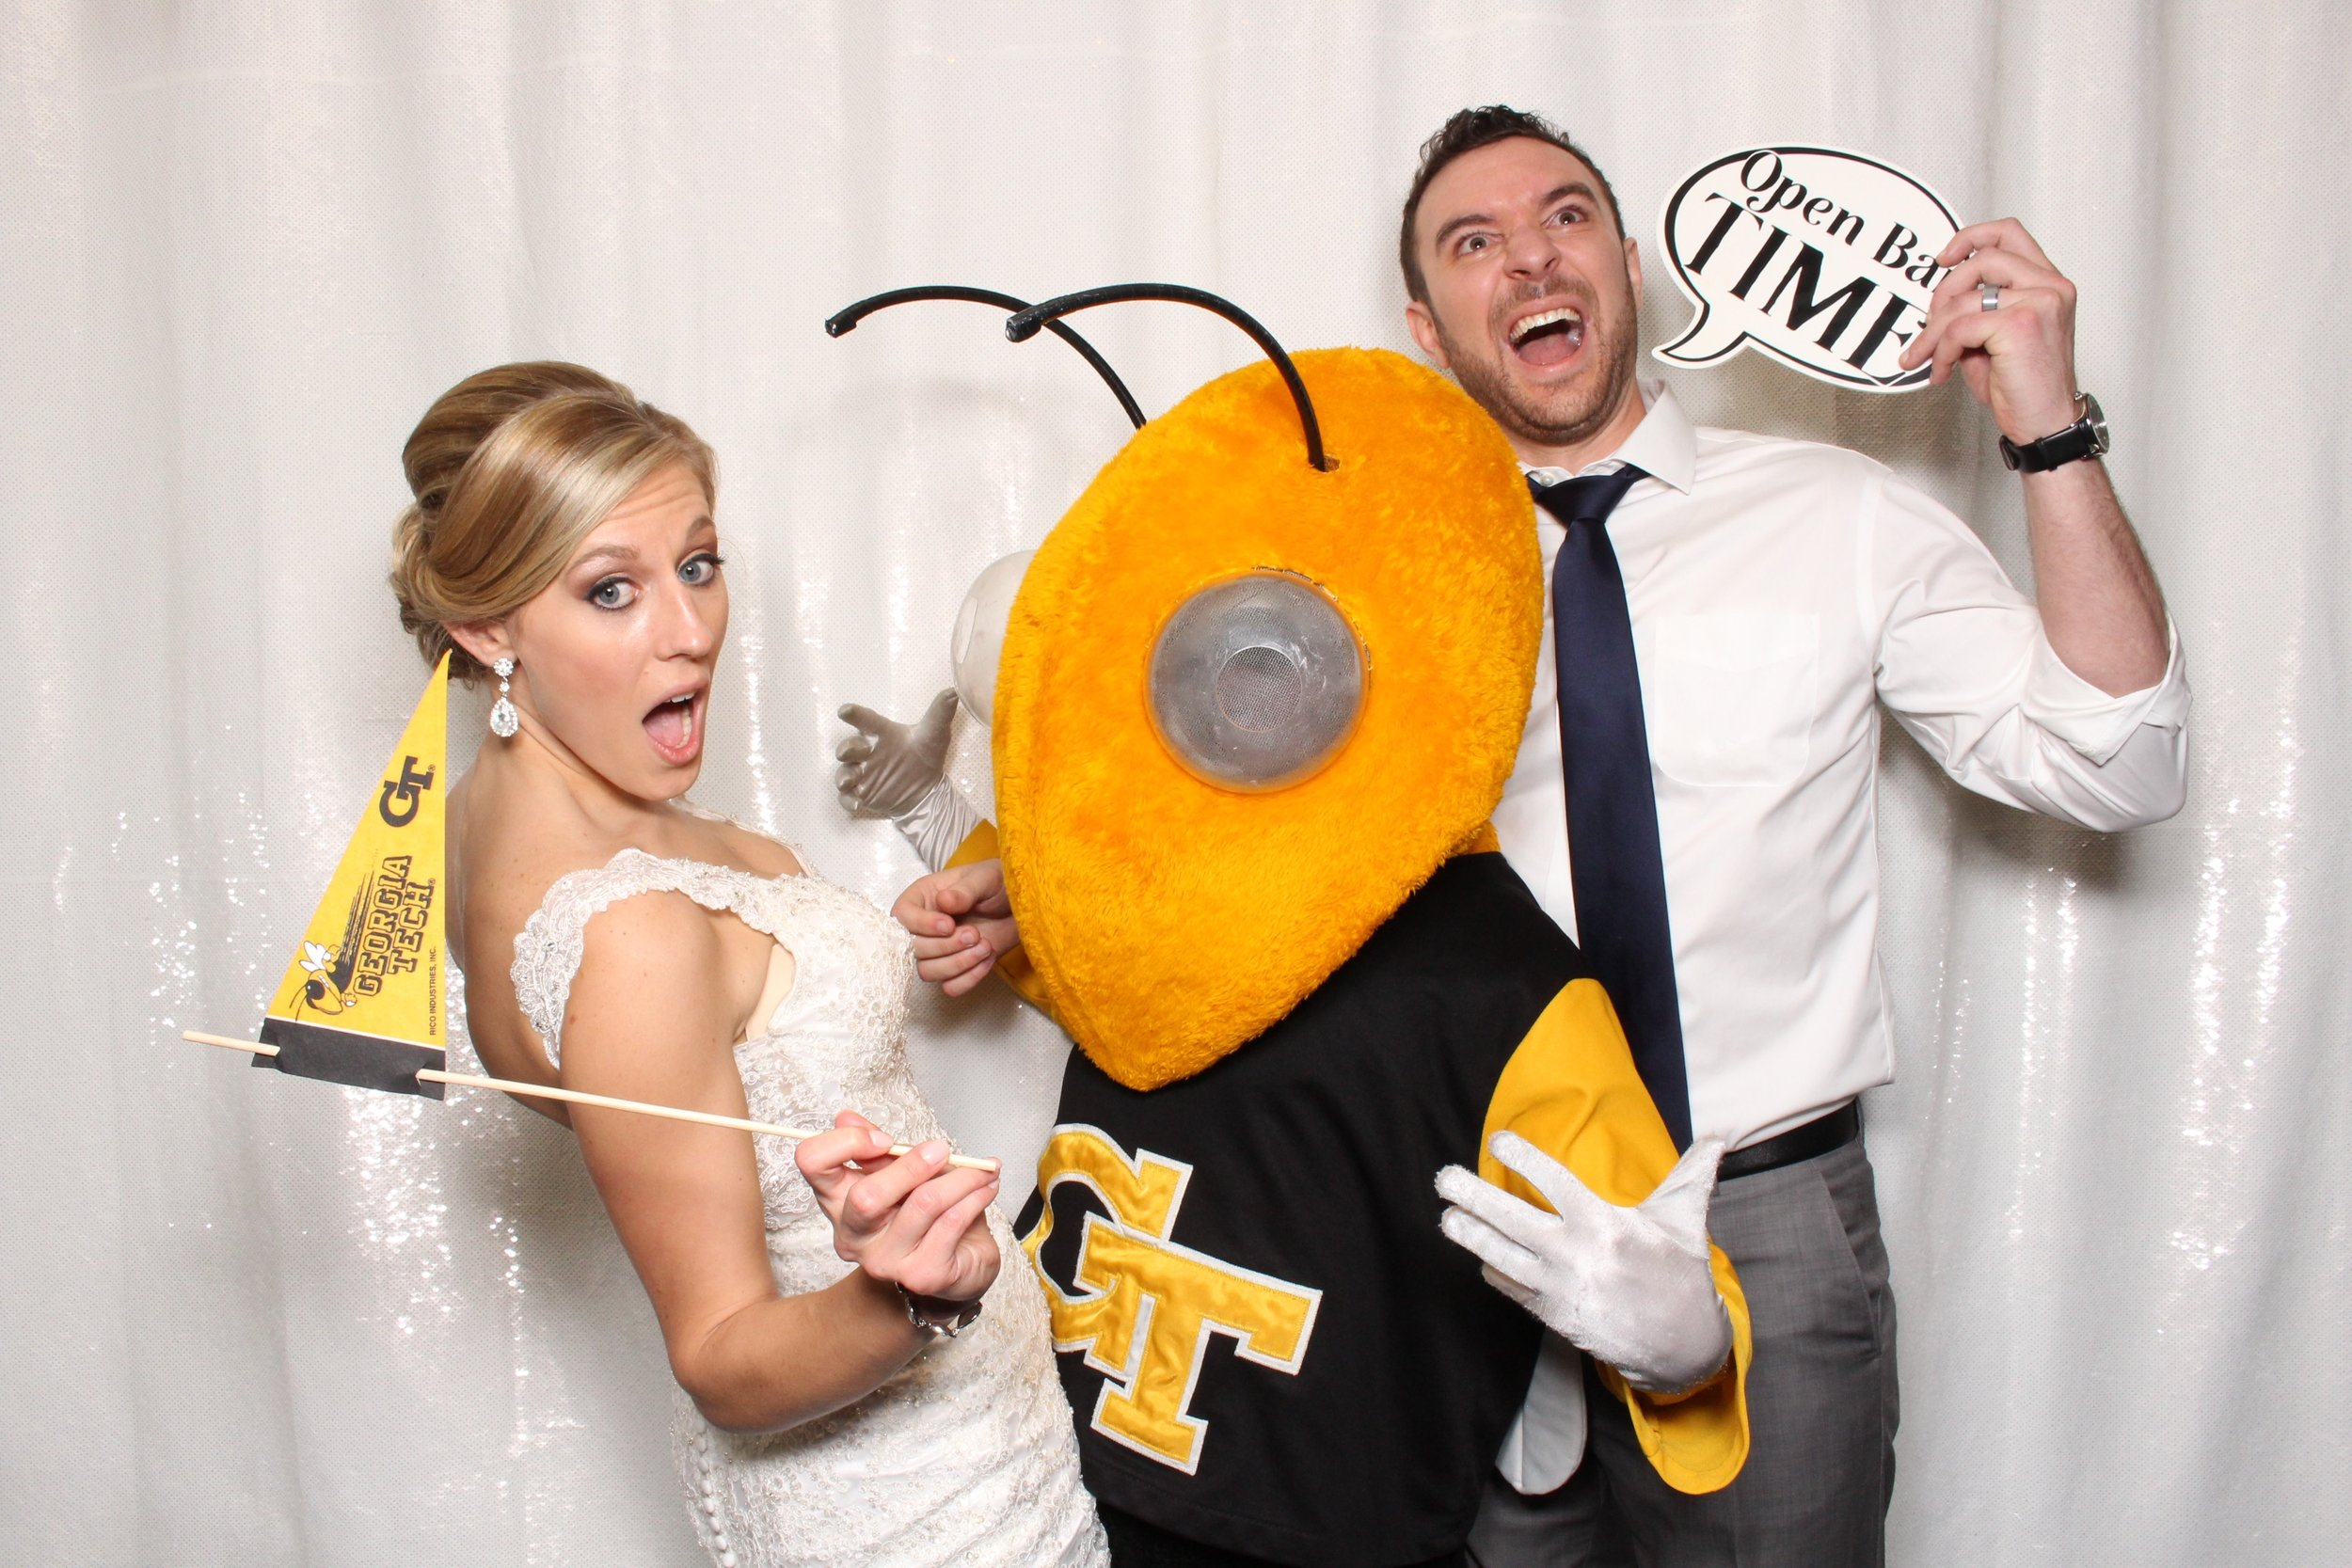 Buzz with the Bride and Groom